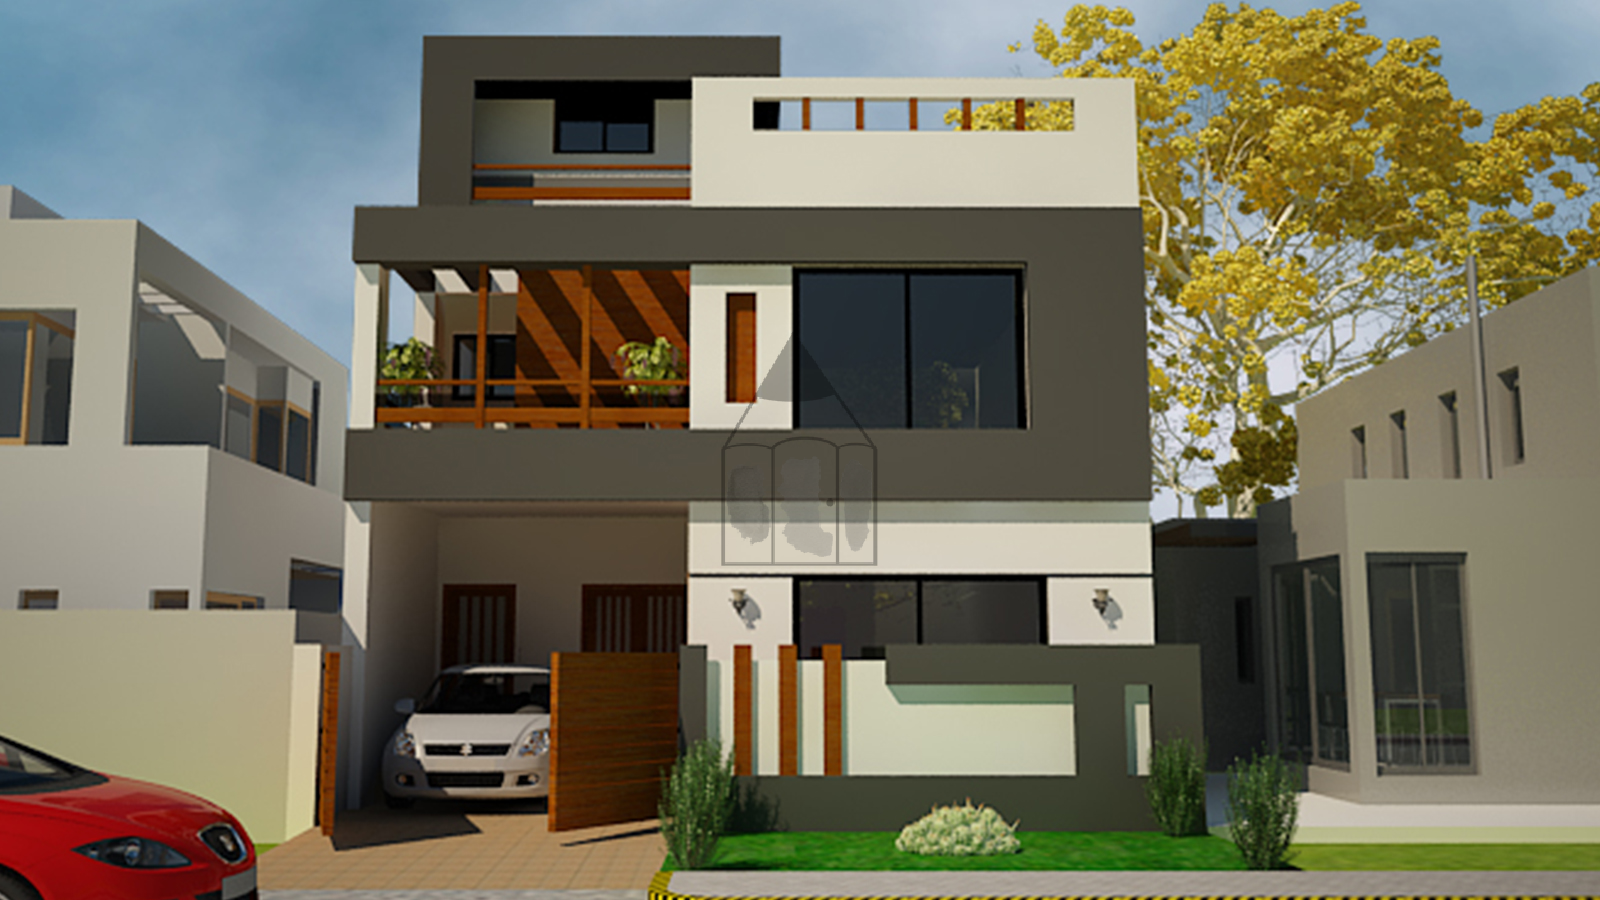 5 marla house front design ashfaq for Small frontage house designs